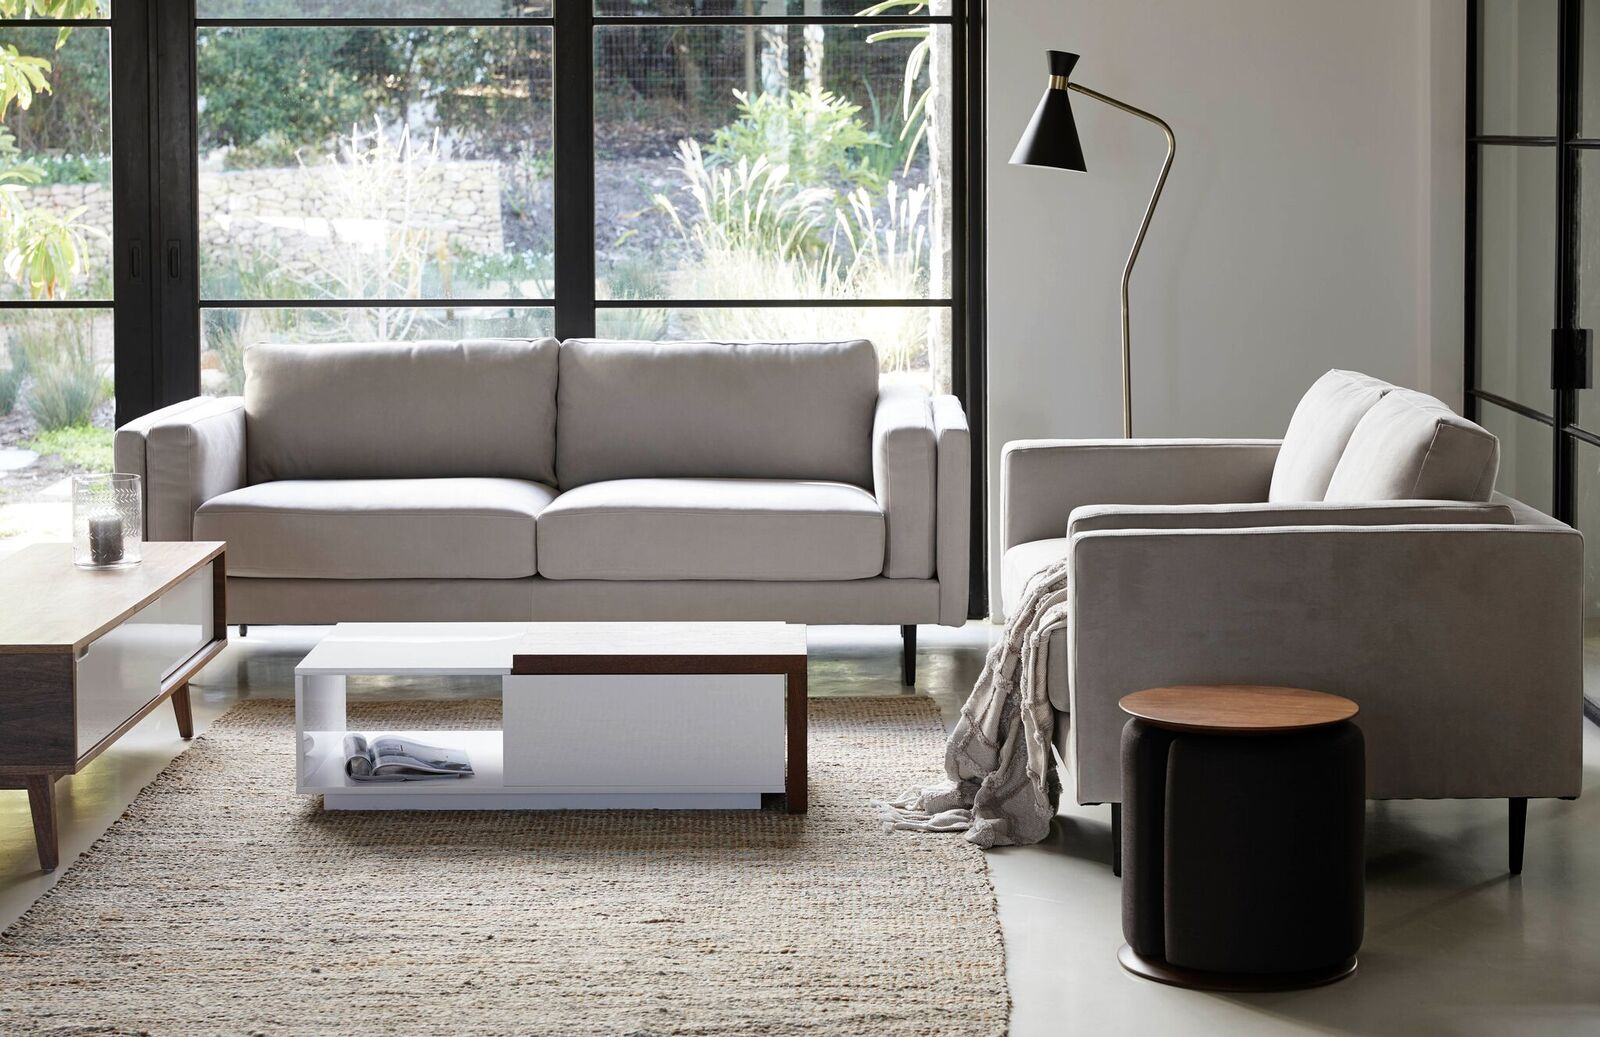 CONTEMPORARY FURNITURE TRENDS